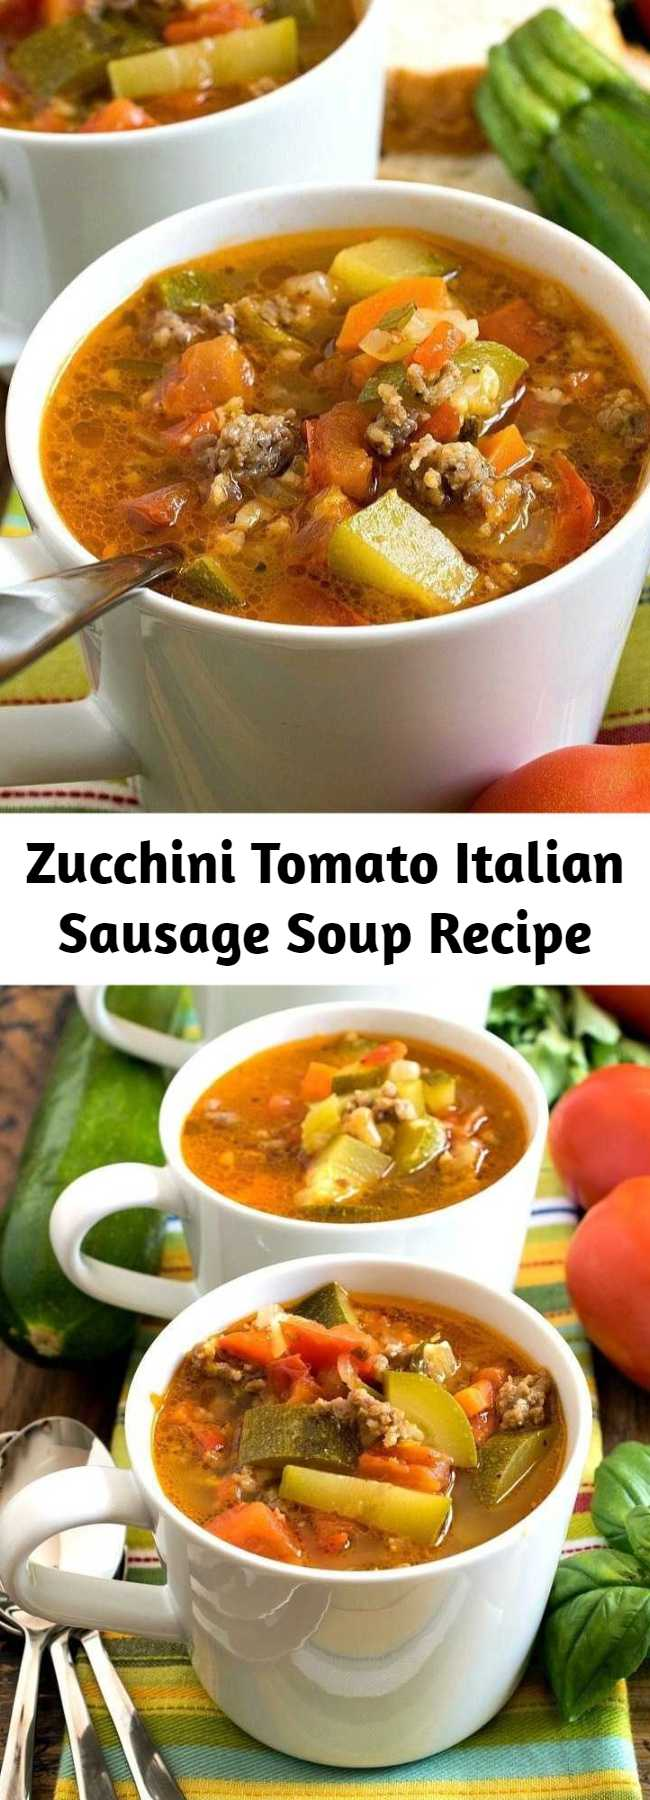 Zucchini Tomato Italian Sausage Soup Recipe - A zesty, super flavorful soup made with fresh zucchini and tomatoes. Sweet Italian sausage adds more great flavor too! #soup #zucchini #tomatoes #Italiansausage